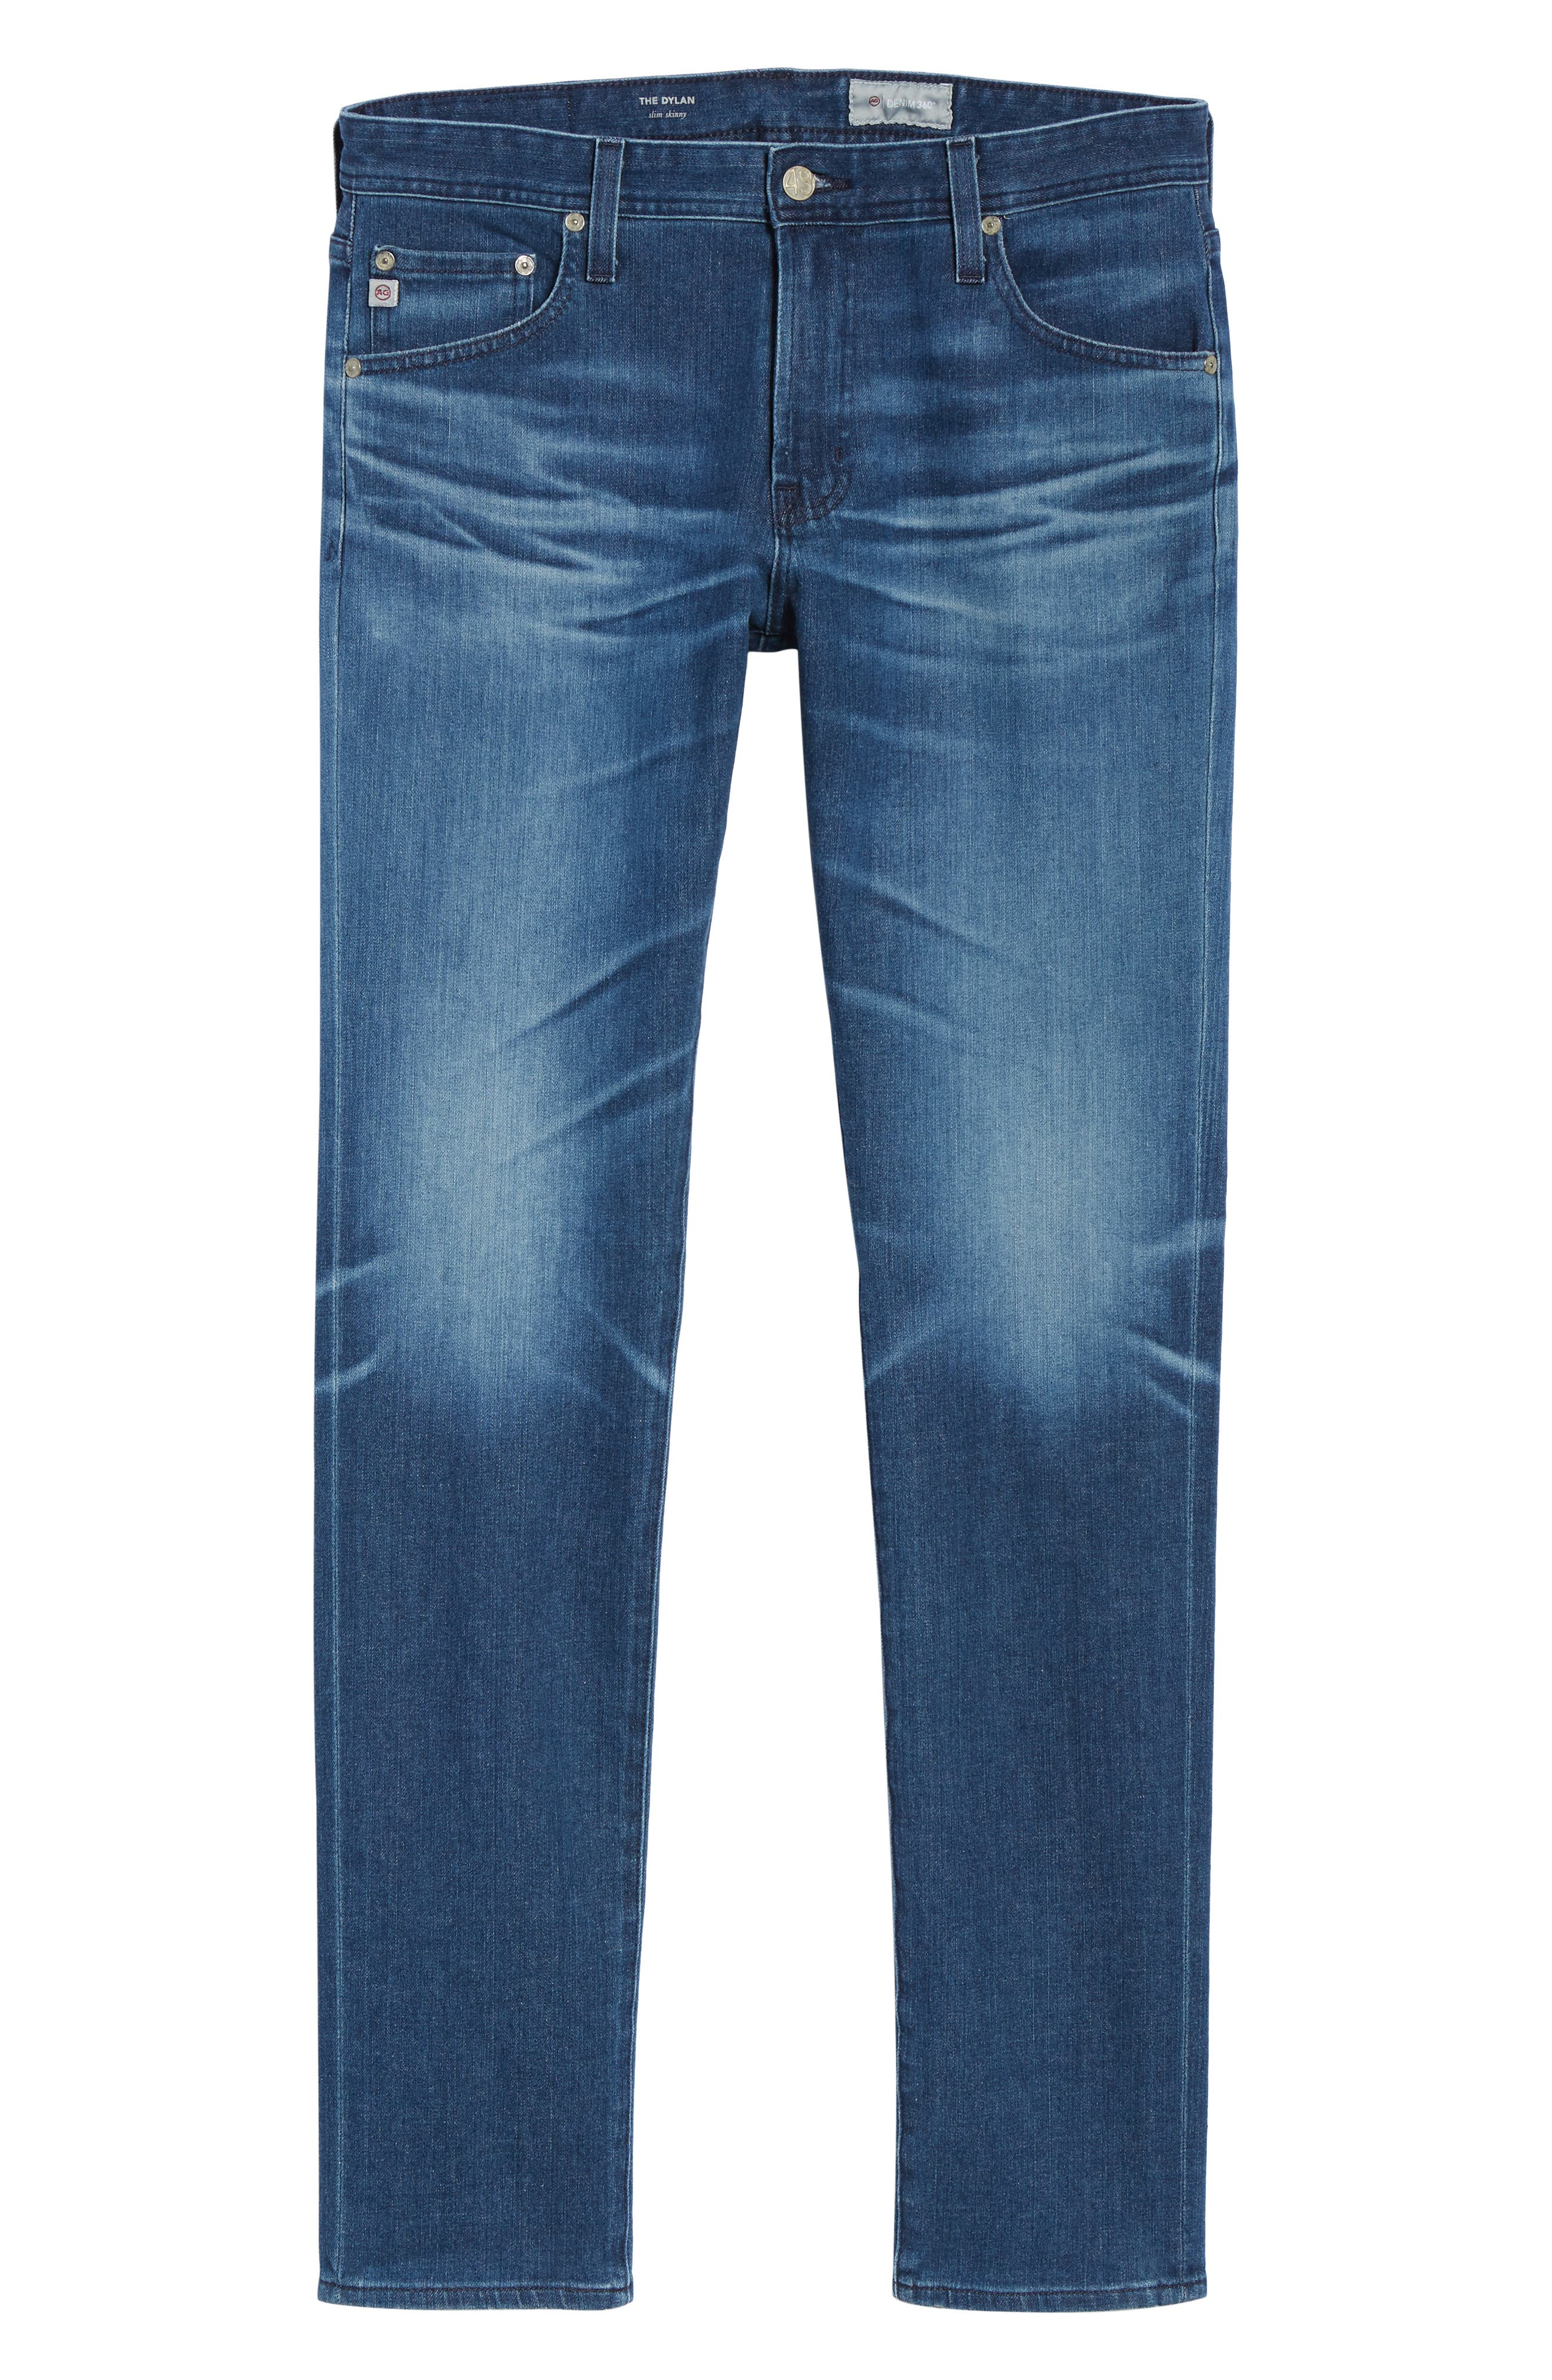 Dylan Skinny Fit Jeans,                             Alternate thumbnail 6, color,                             437